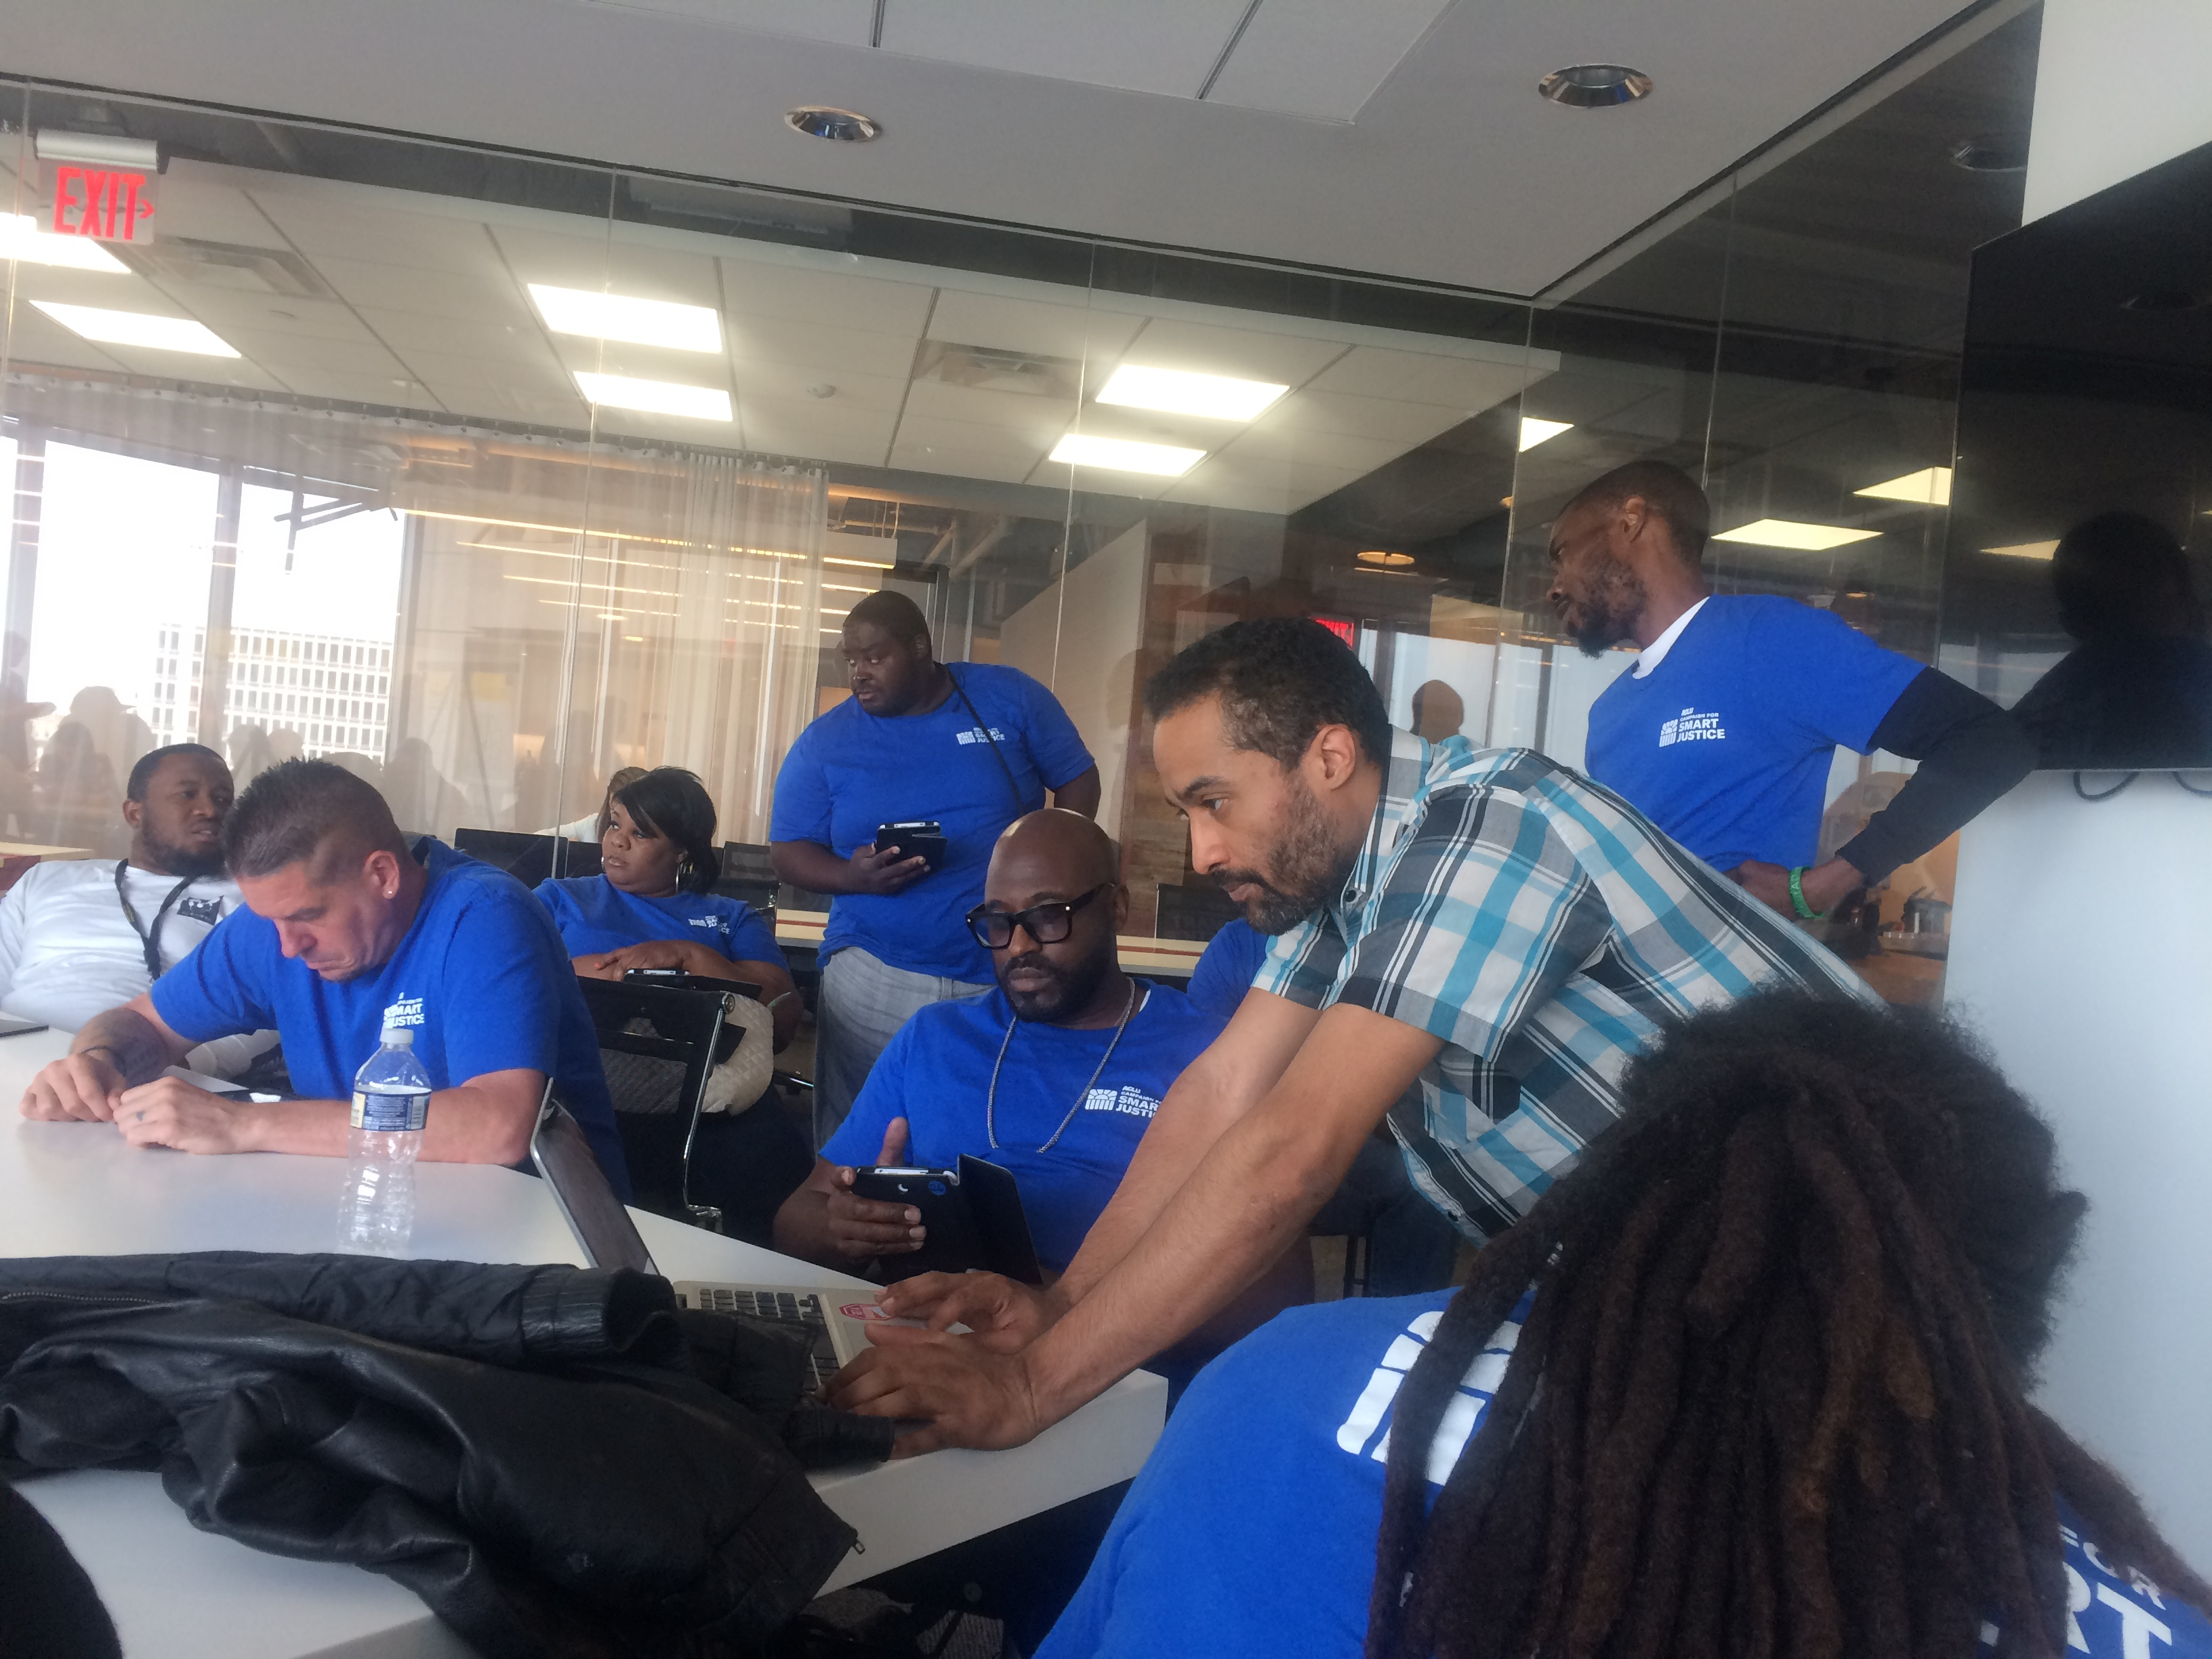 Nick Pressley (right), campaign manager for the ACLU Campaign for Smart Justice, gives out assignments to canvassers, mostly referred by reentry organizations, to do voter education and get-out-the-vote work ahead of the Philadelphia District Attorney race.